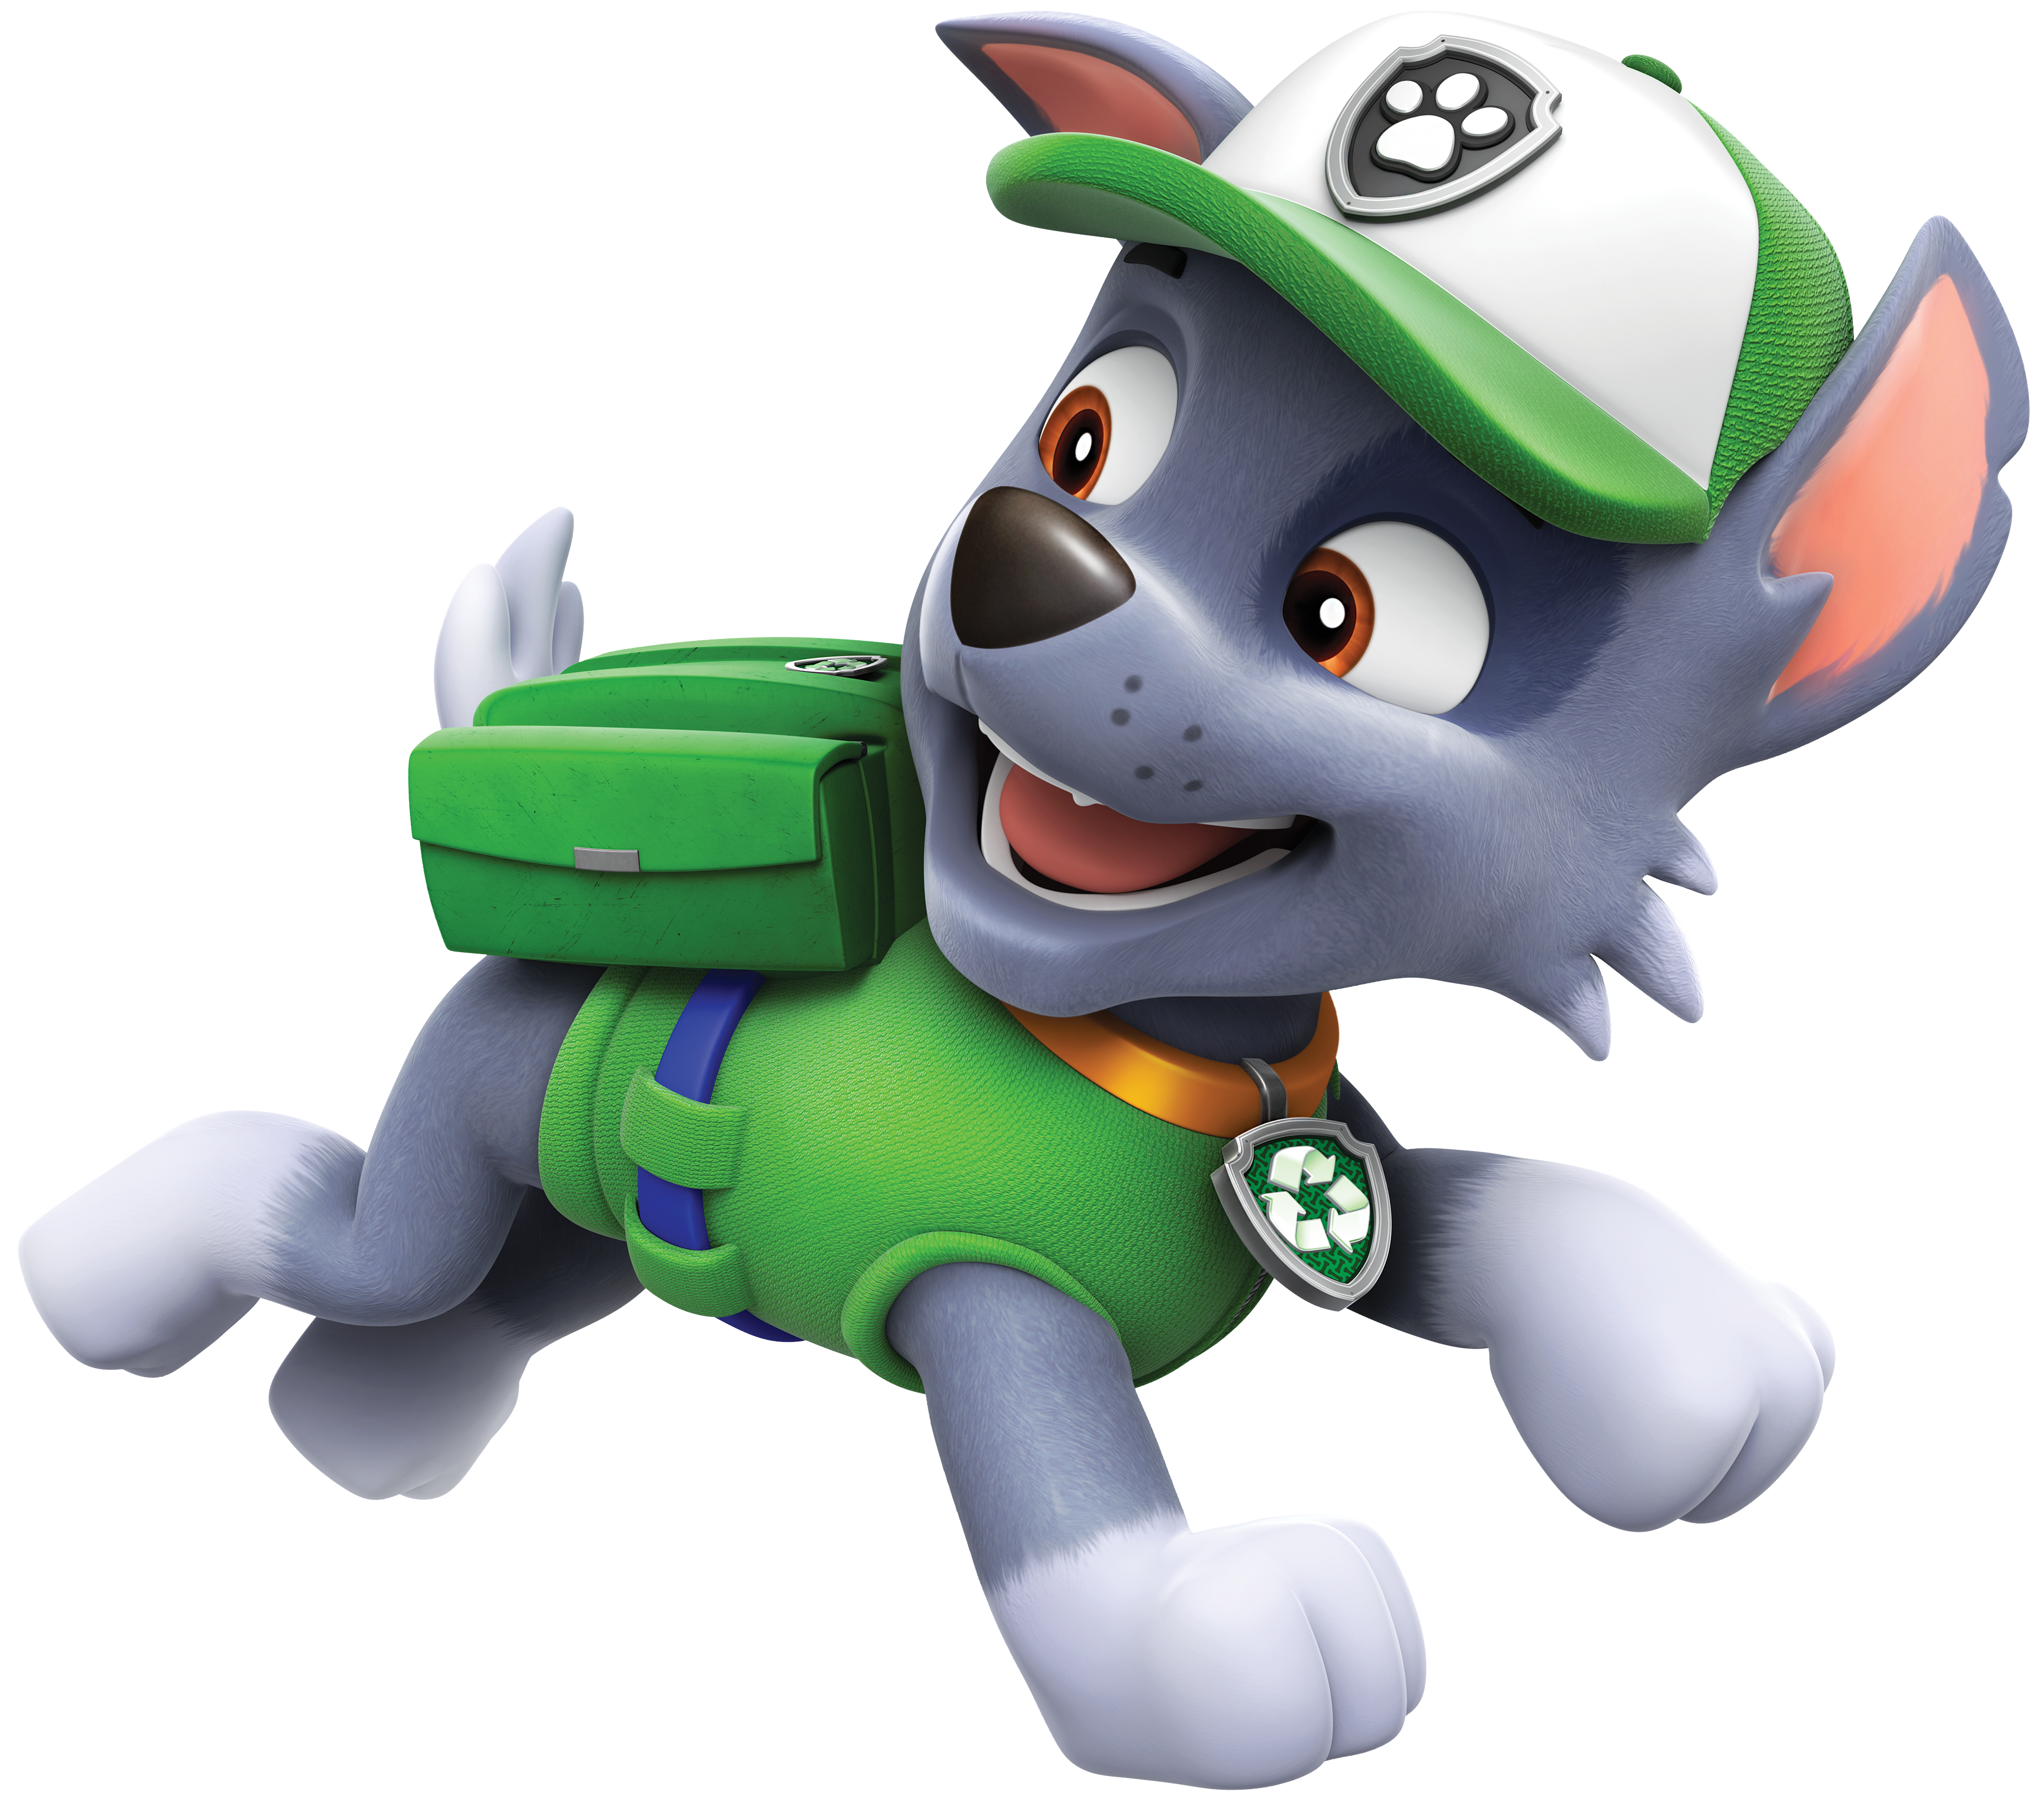 Paw Patrol Rocky Png Cartoon Image Gallery Yopriceville High Quality Images And Transparent Png Paw Patrol Cartoon Paw Patrol Characters Paw Patrol Rocky